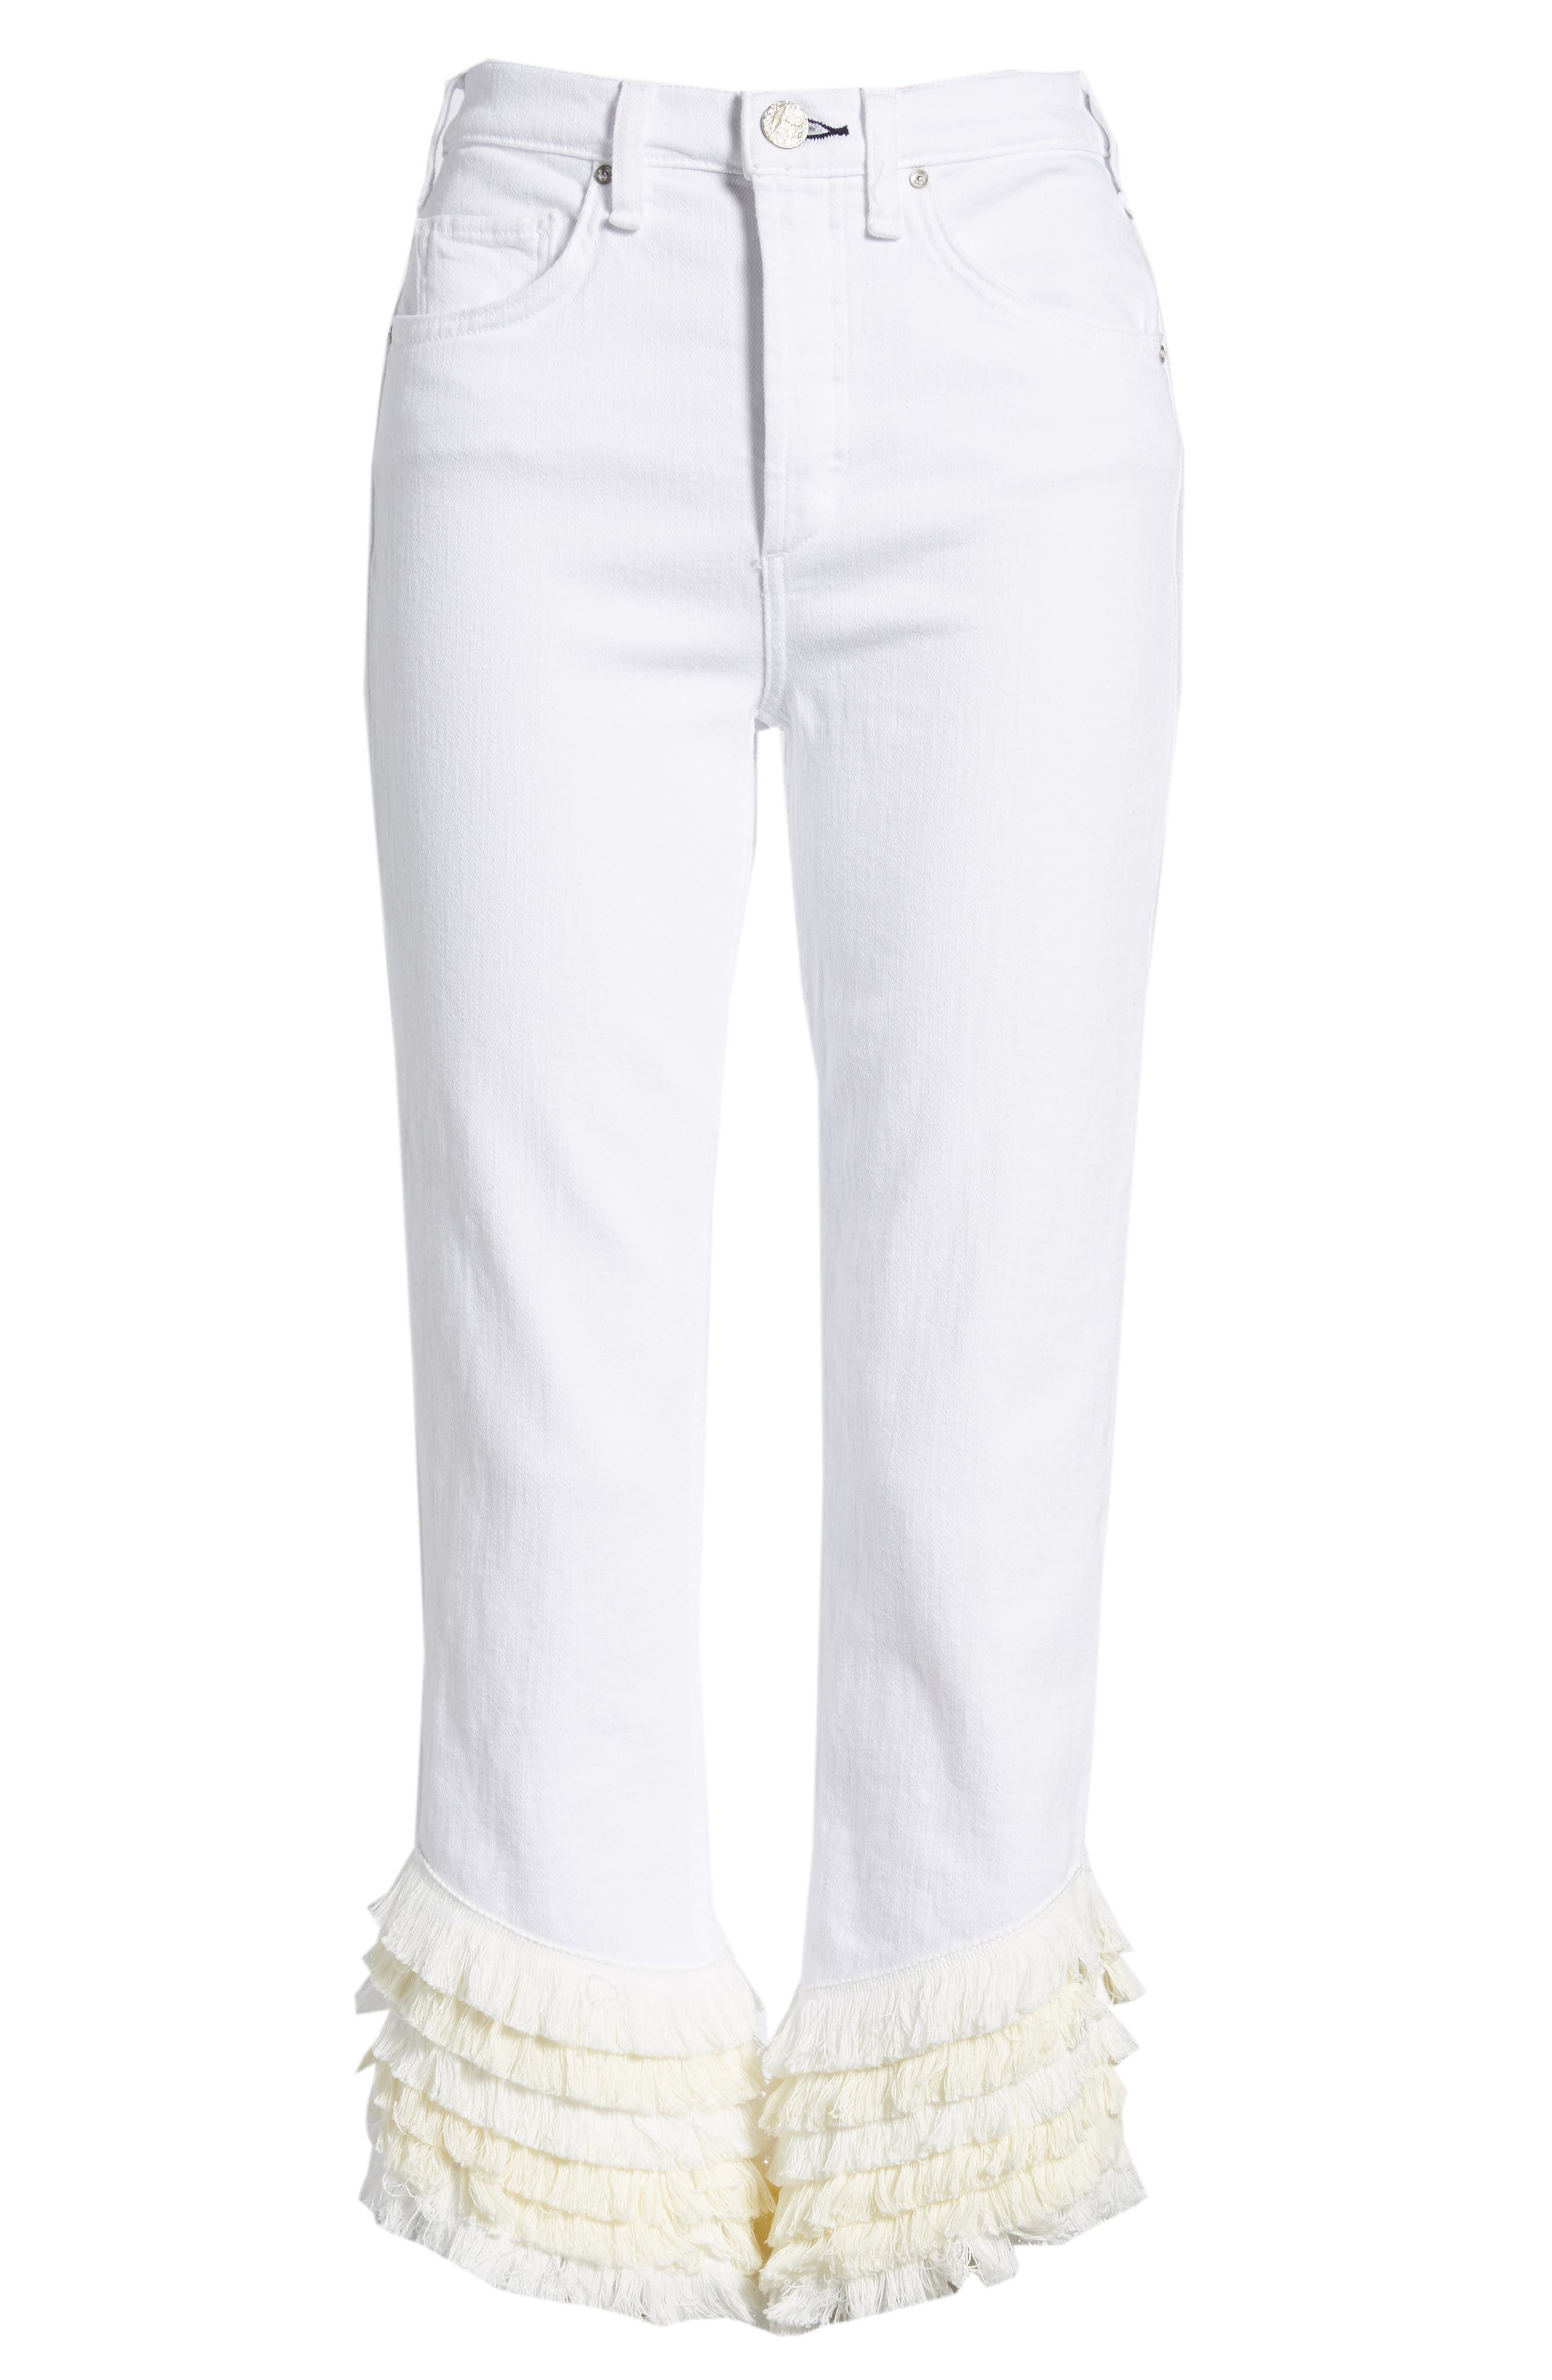 Cha Cha Flare Jeans,                             Alternate thumbnail 7, color,                             Swing Time